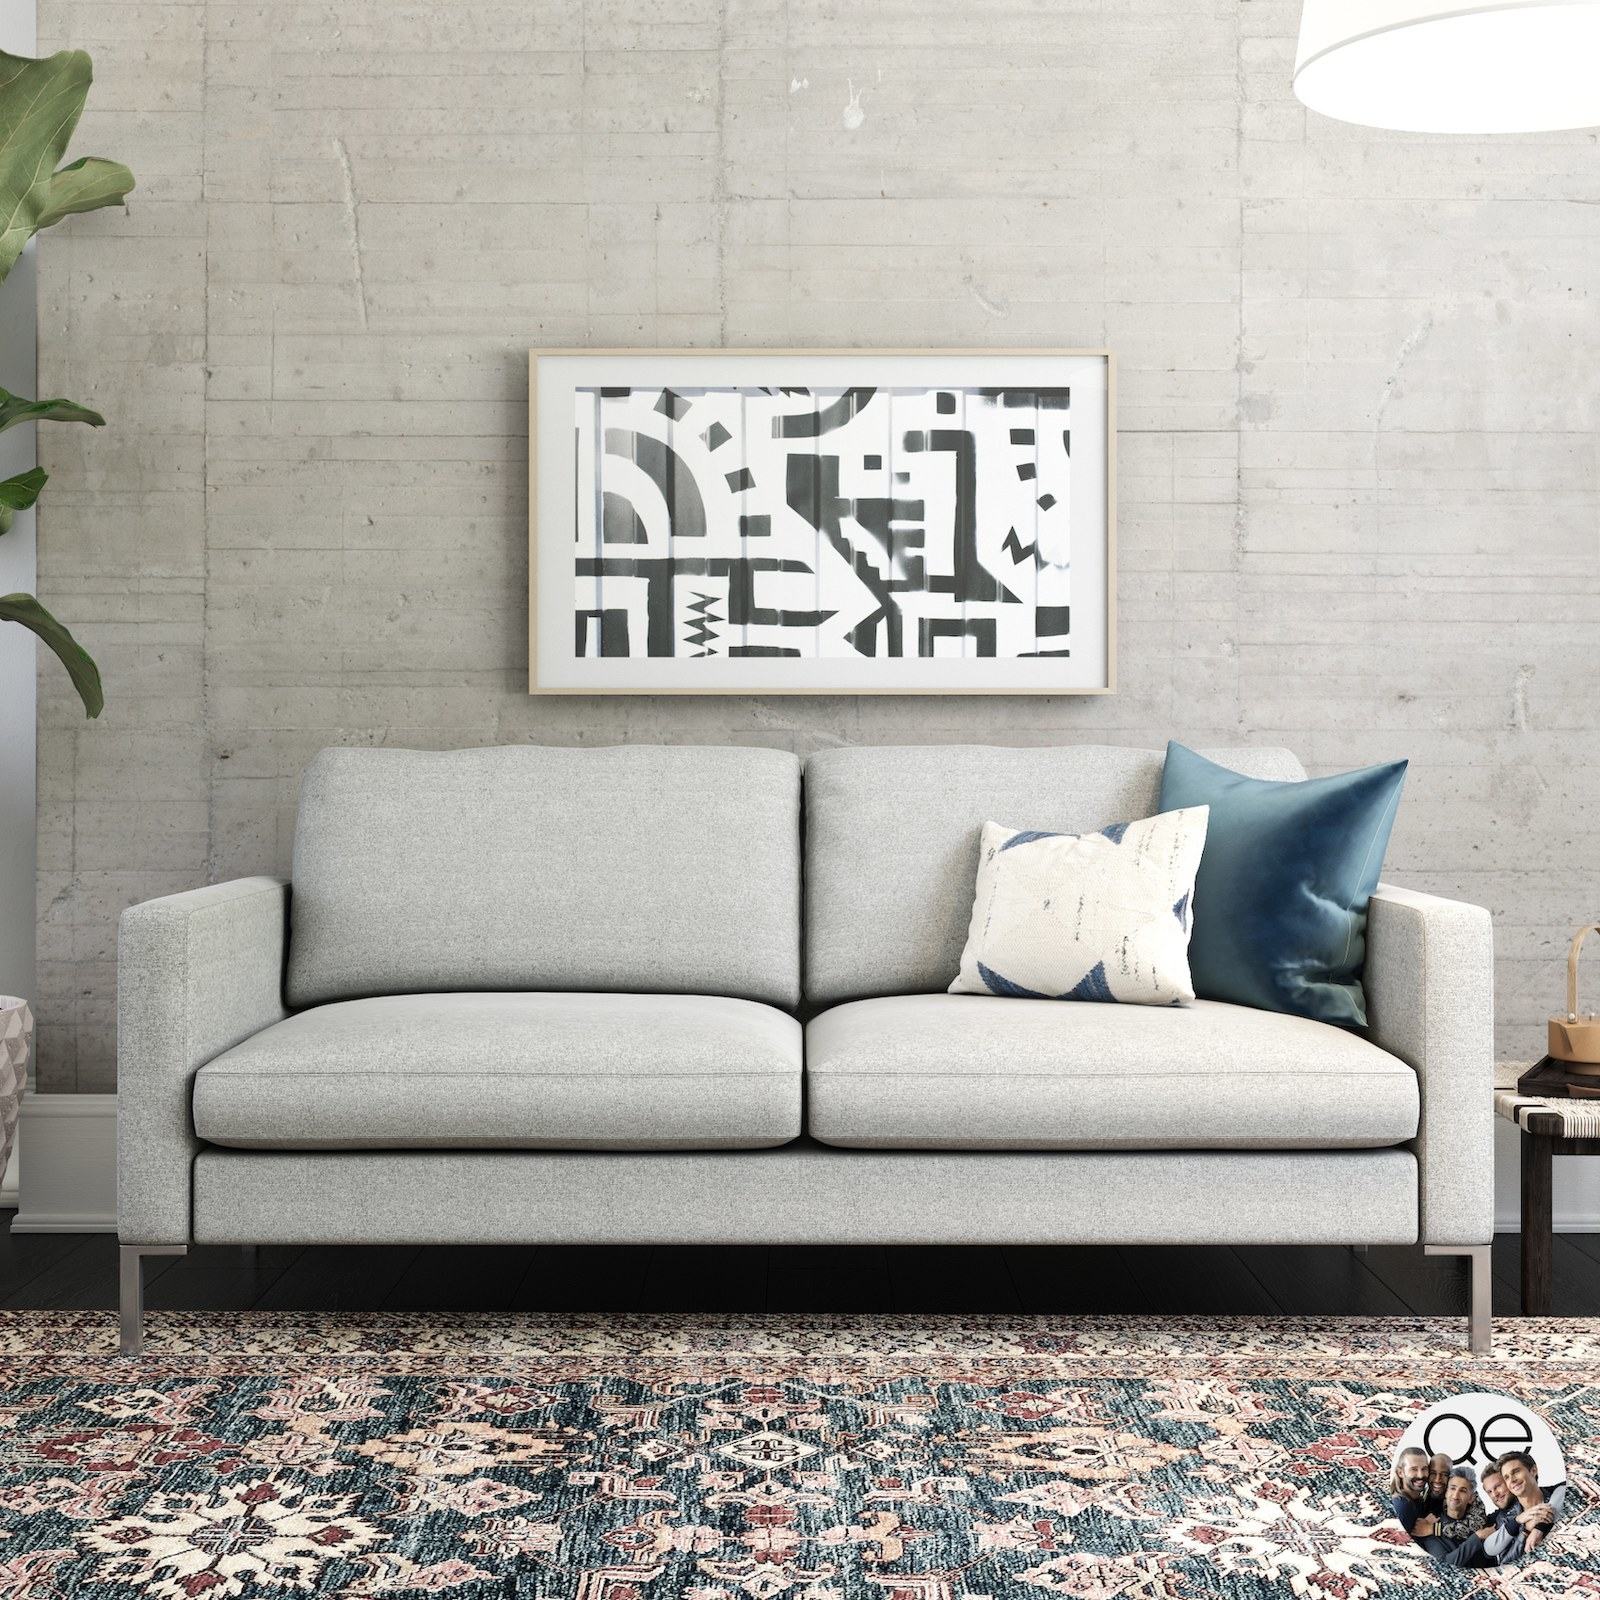 The gray couch with two seat cushions and two back cushions and stainless steel legs in a living room